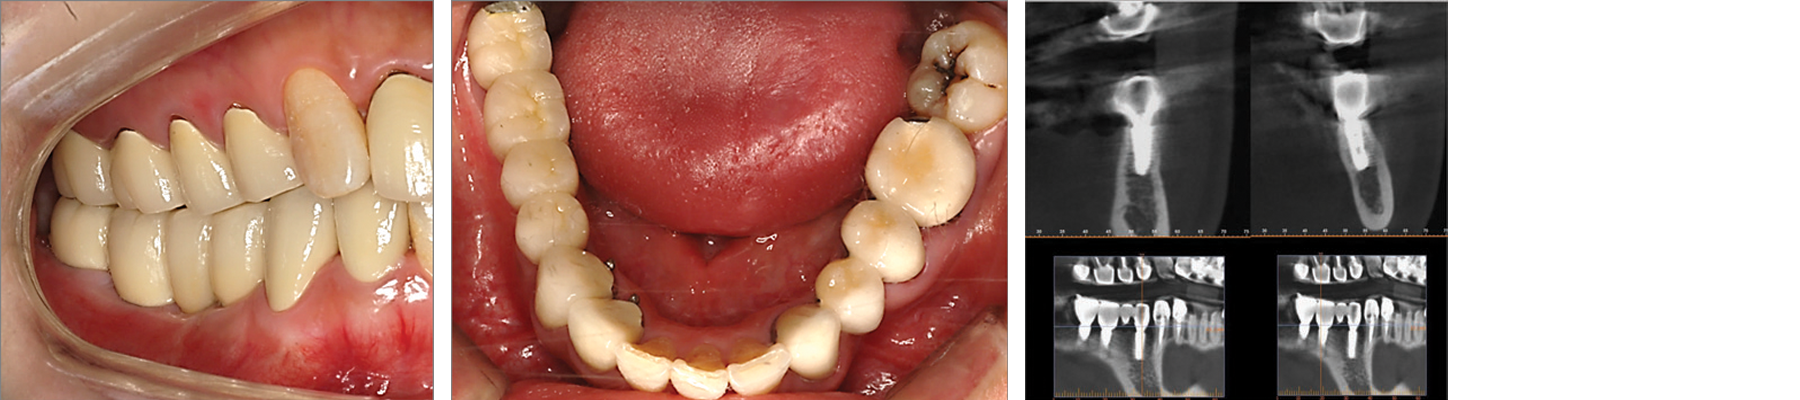 Final prosthesis was placed 14 weeks after implant placement.